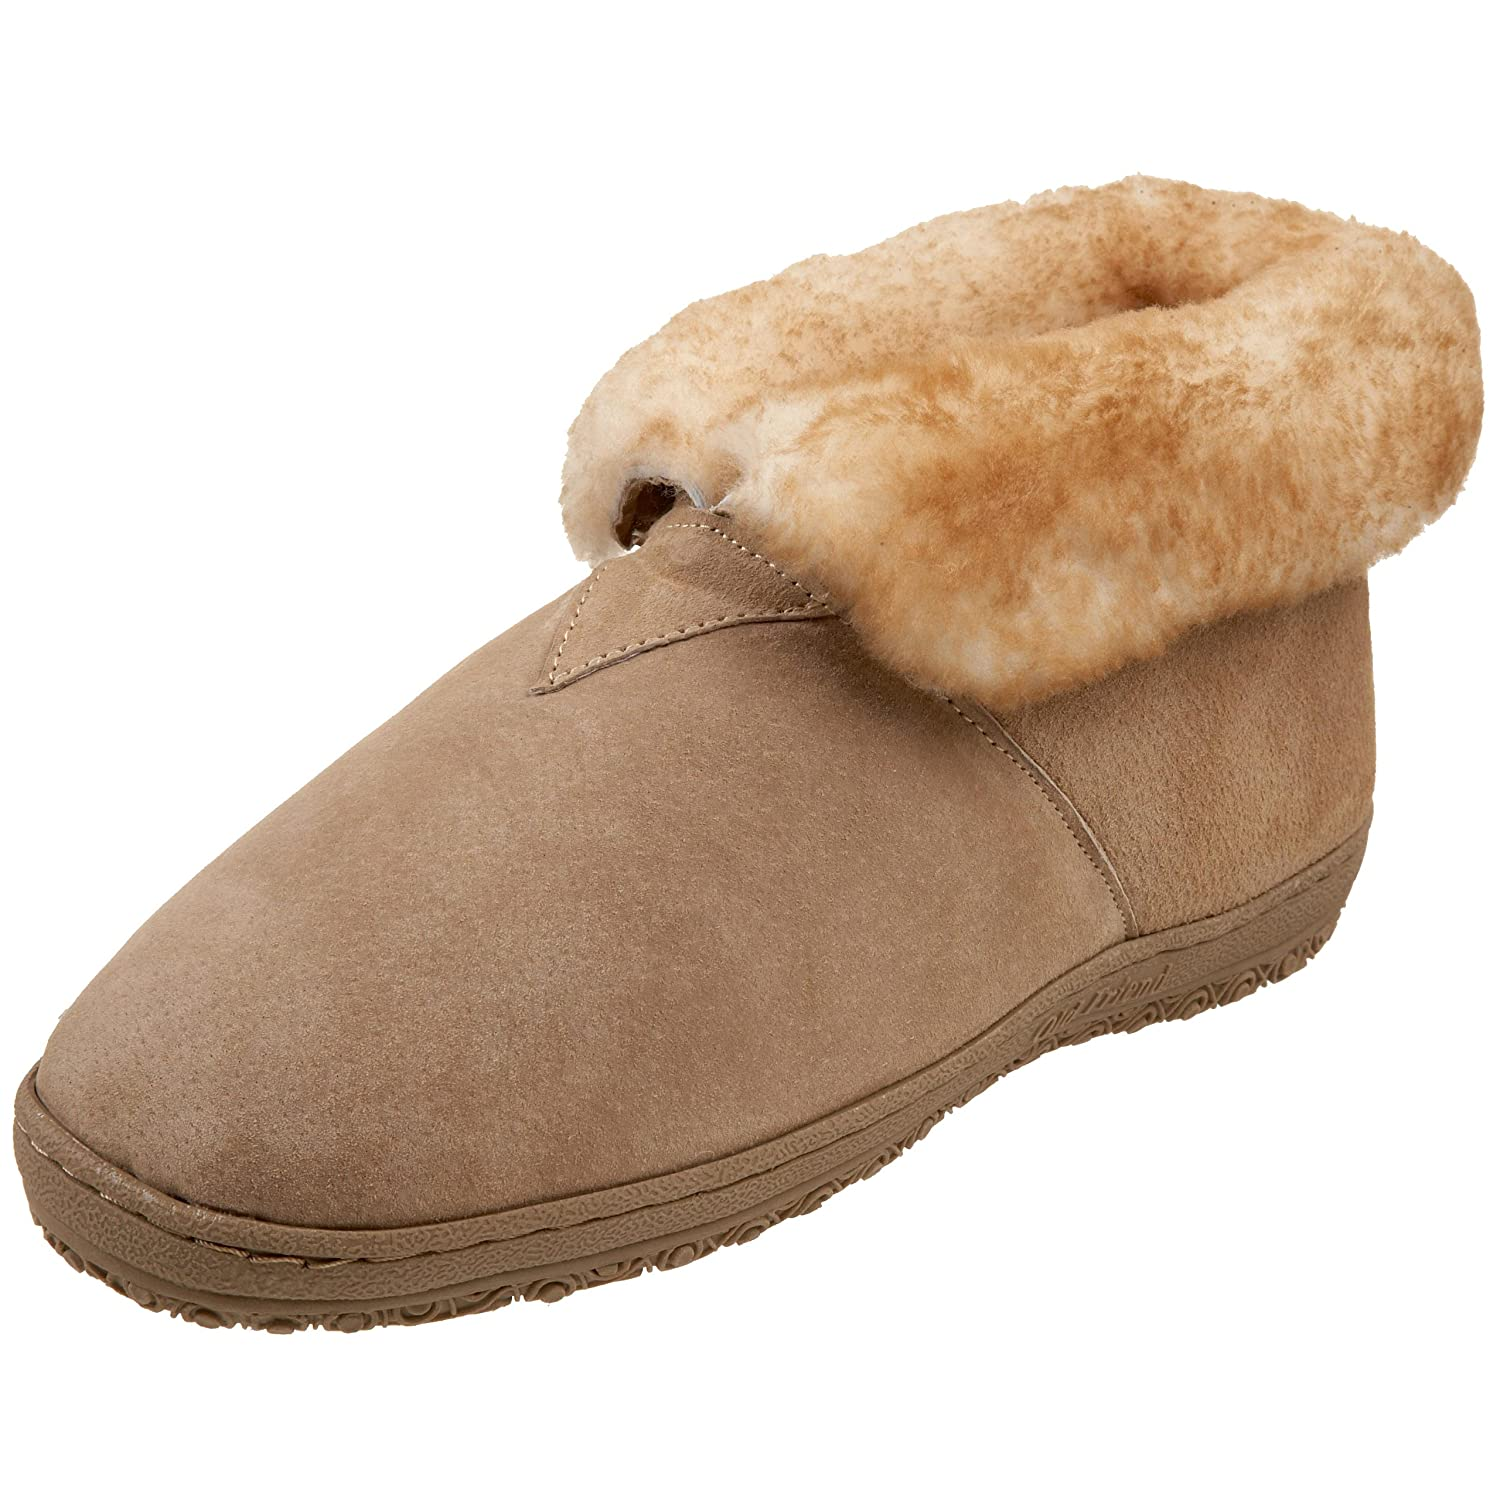 mens anton shoes bedroom slippers shepherd genuine sheepskin sole itm boots hard